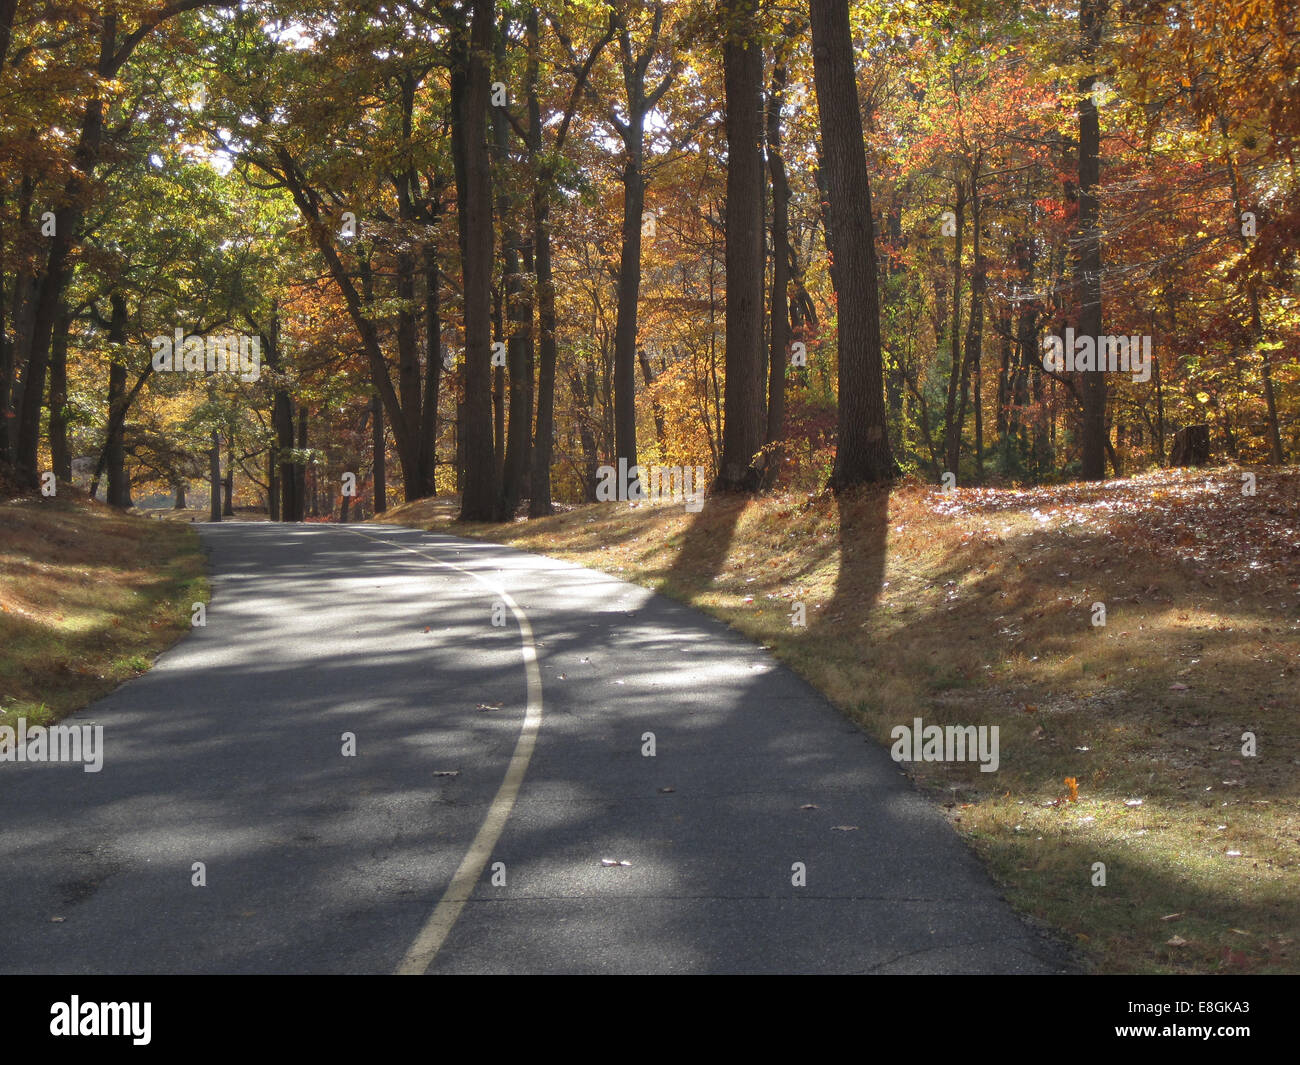 USA, New York State, Lloyd Harbor, Fall path and trees at park - Stock Image